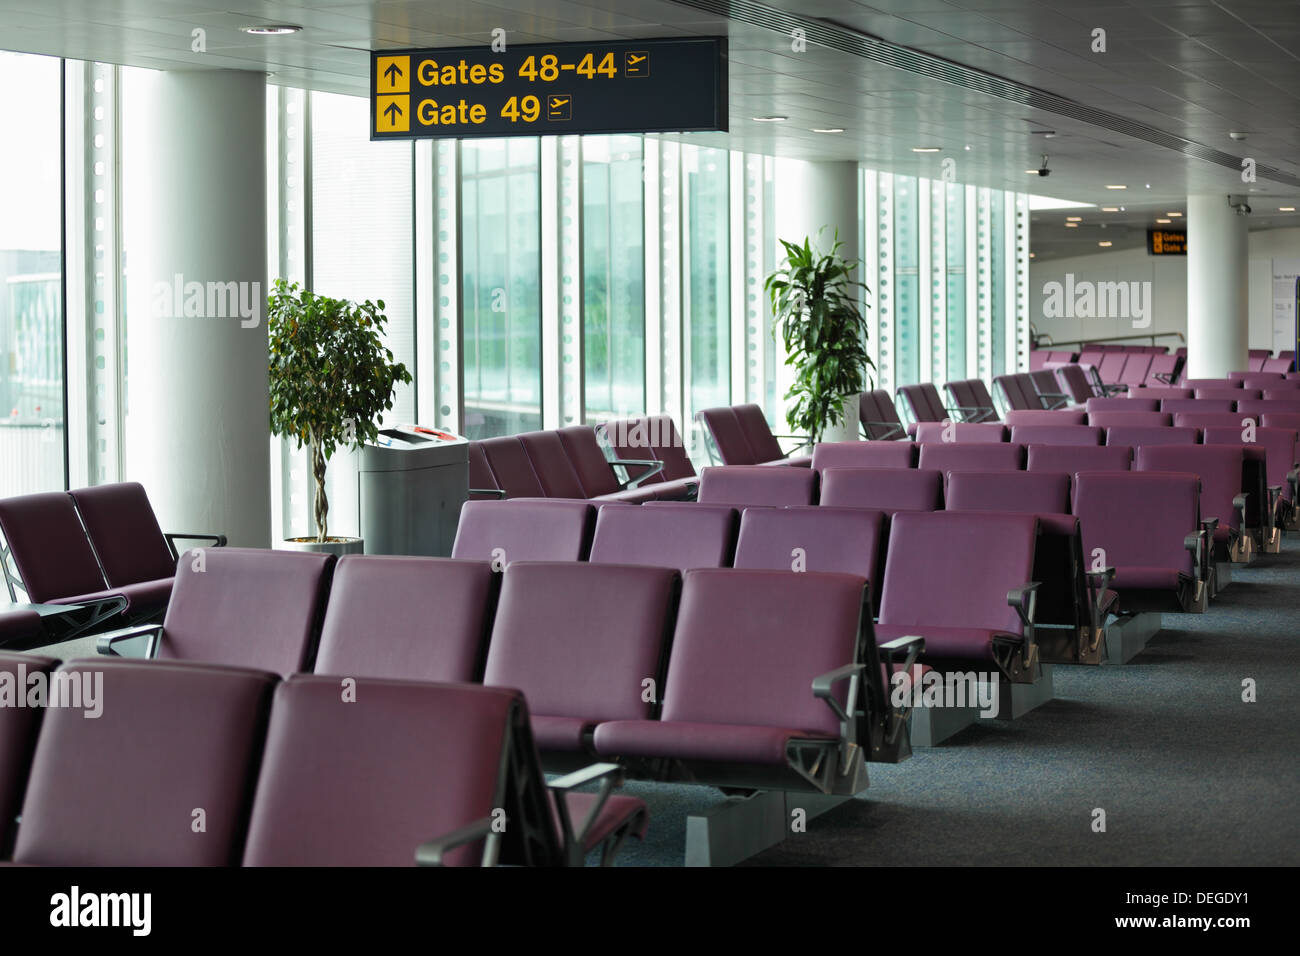 Airport departure gate - Stock Image